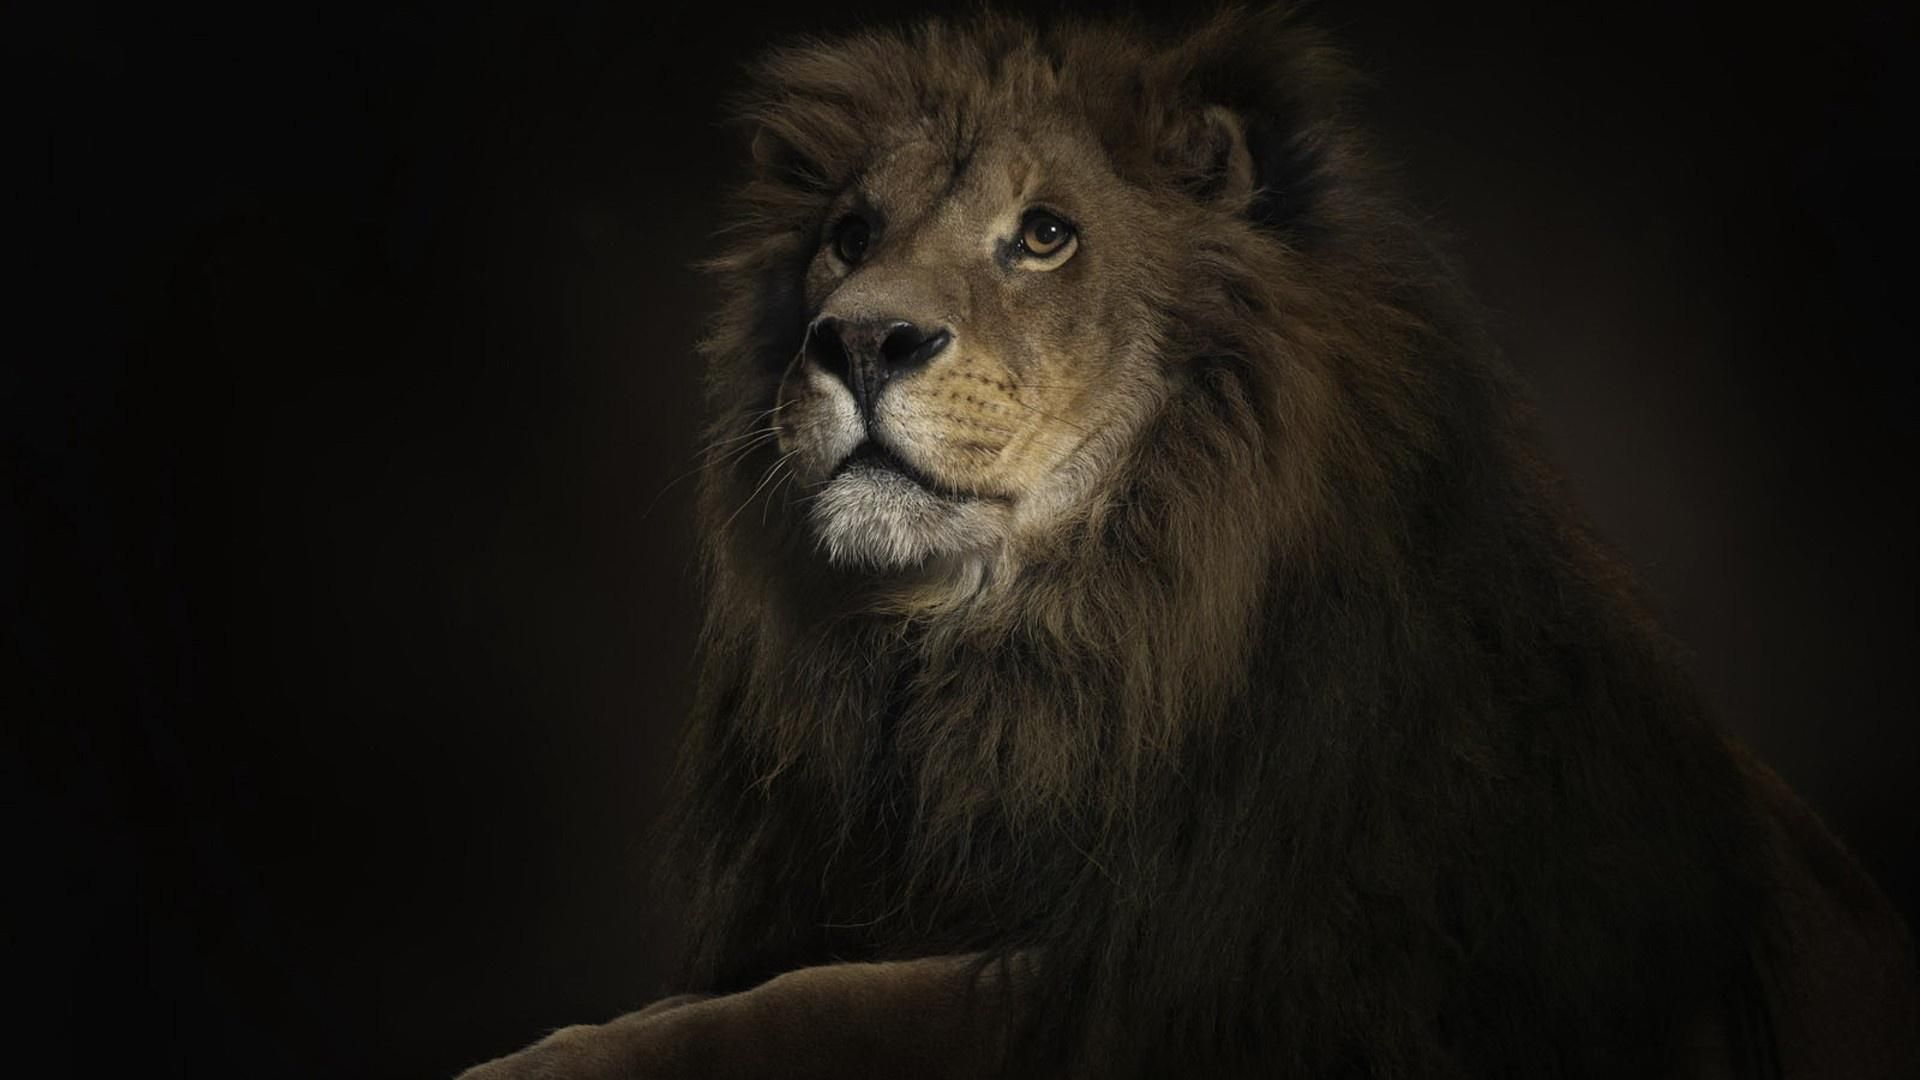 great lion wallpapers in hd high quality wallpapers k   wallpapers